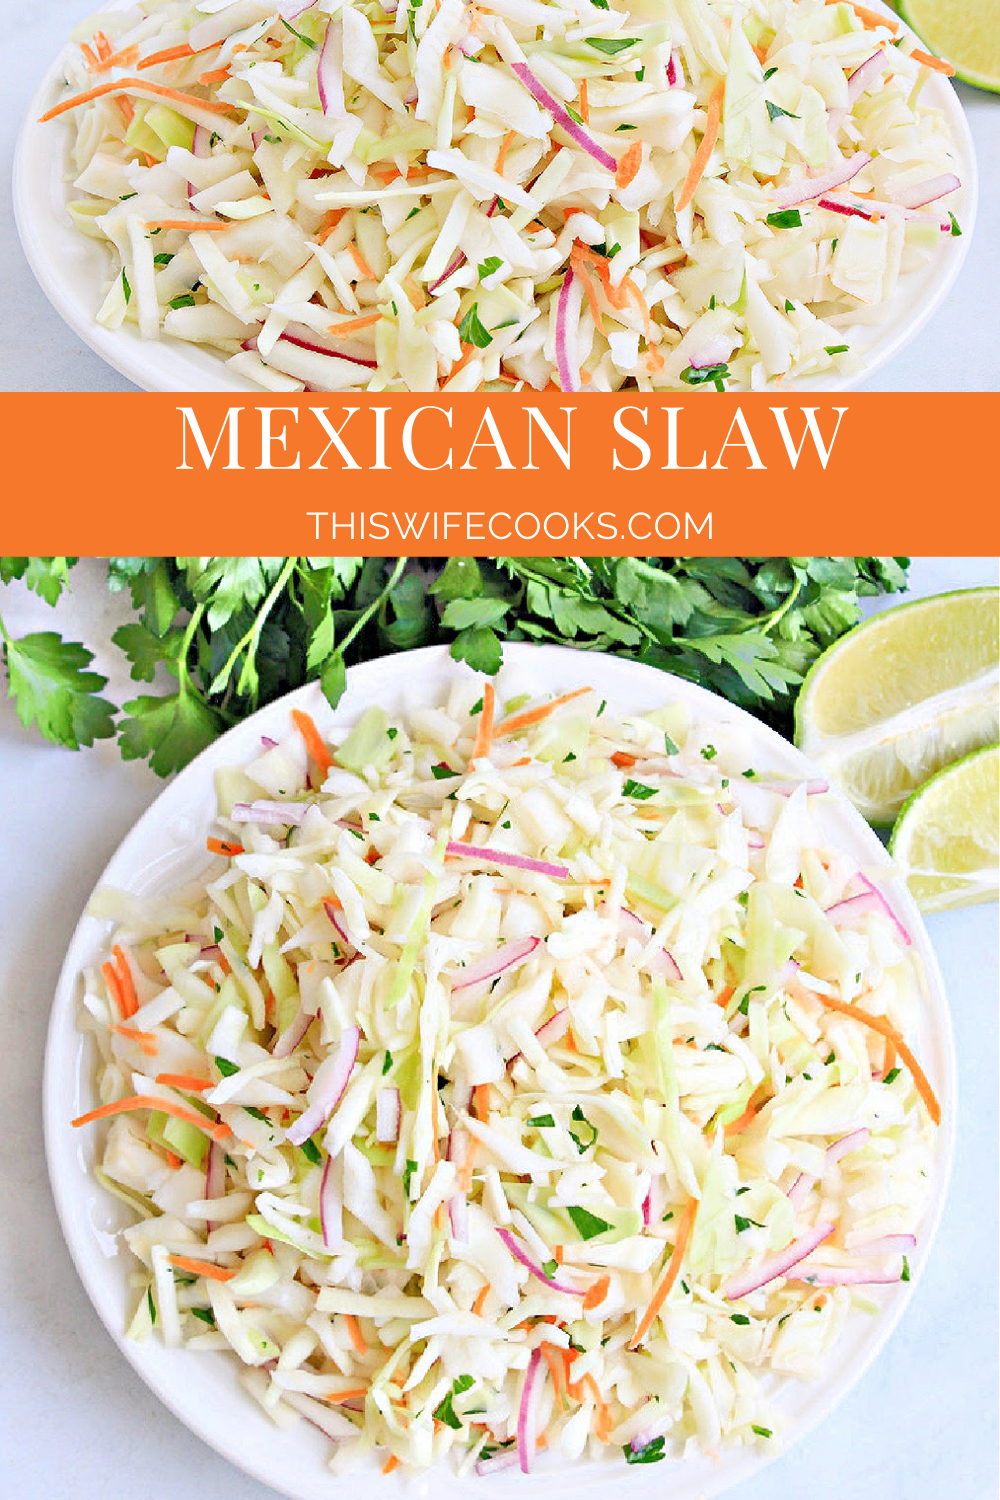 A cilantro-lime coleslaw that is ultra-light, healthy, and ready to serve in about 5 minutes! via @thiswifecooks